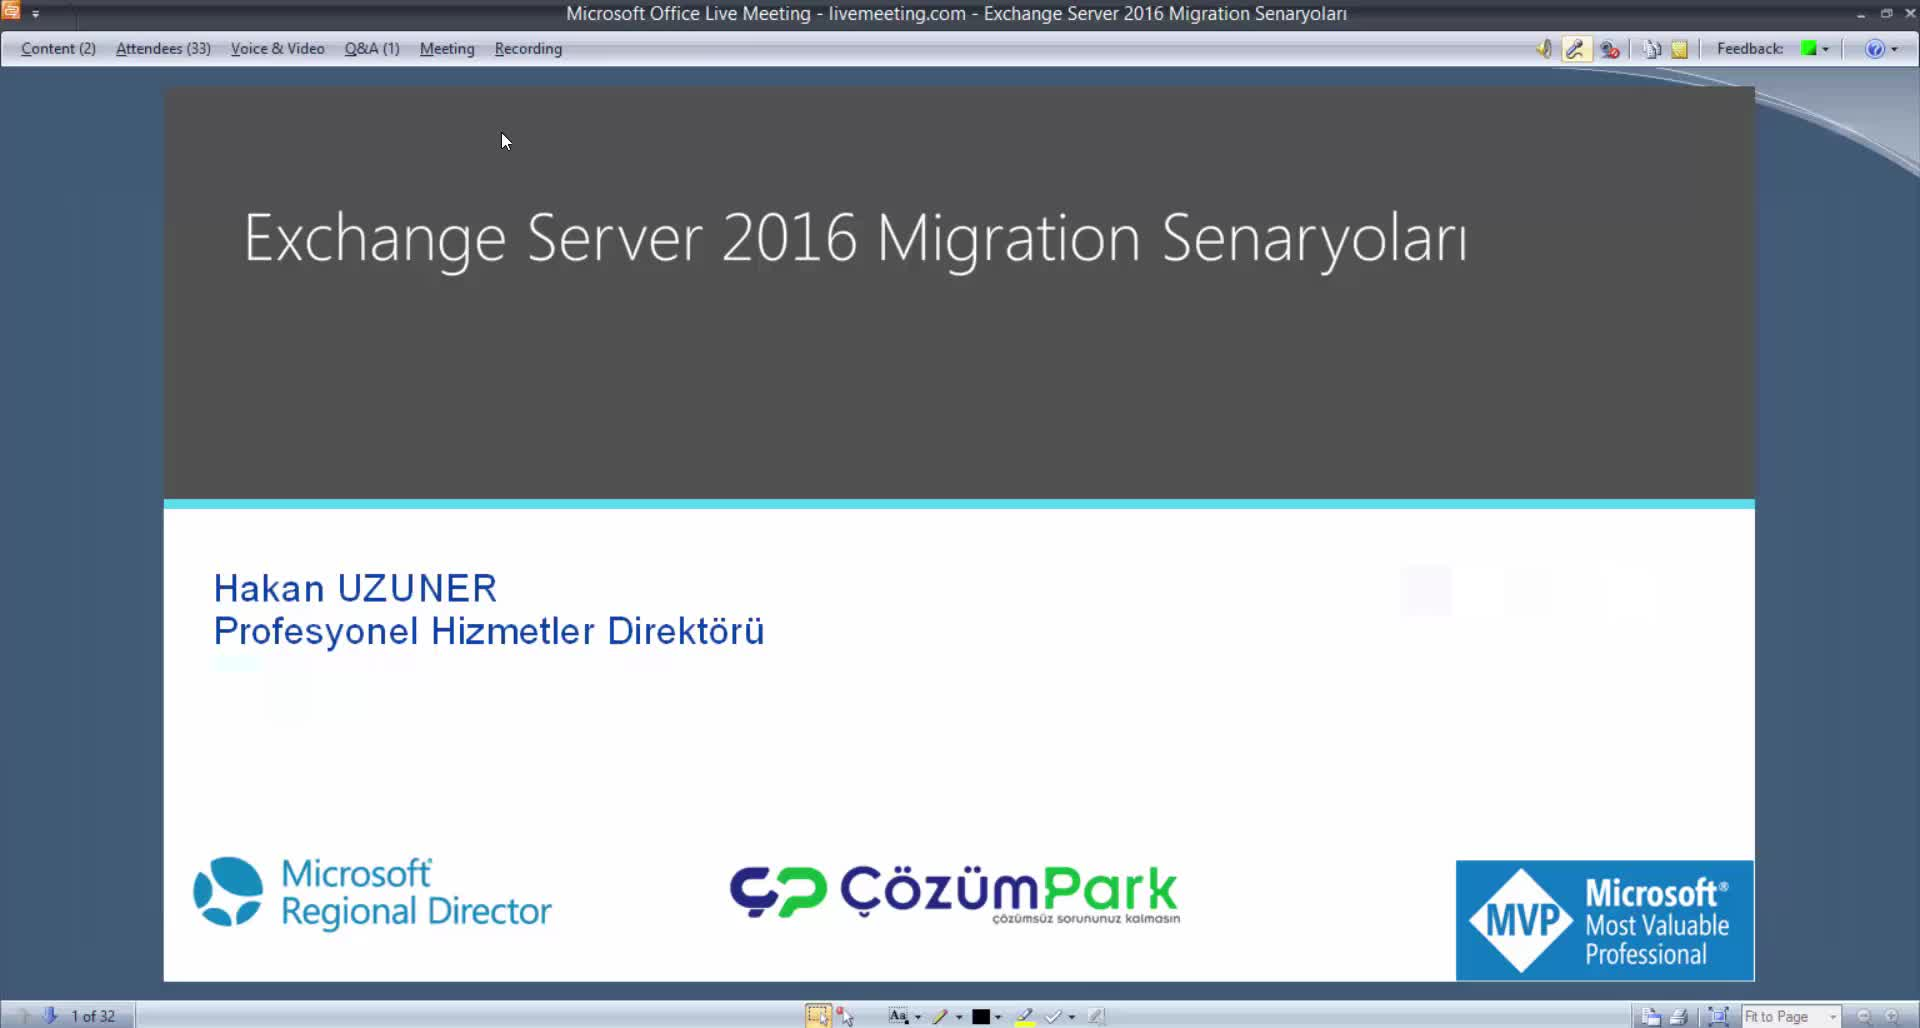 Exchange Server 2016 Geçiş Senaryoları - Exchange 2016 Migration